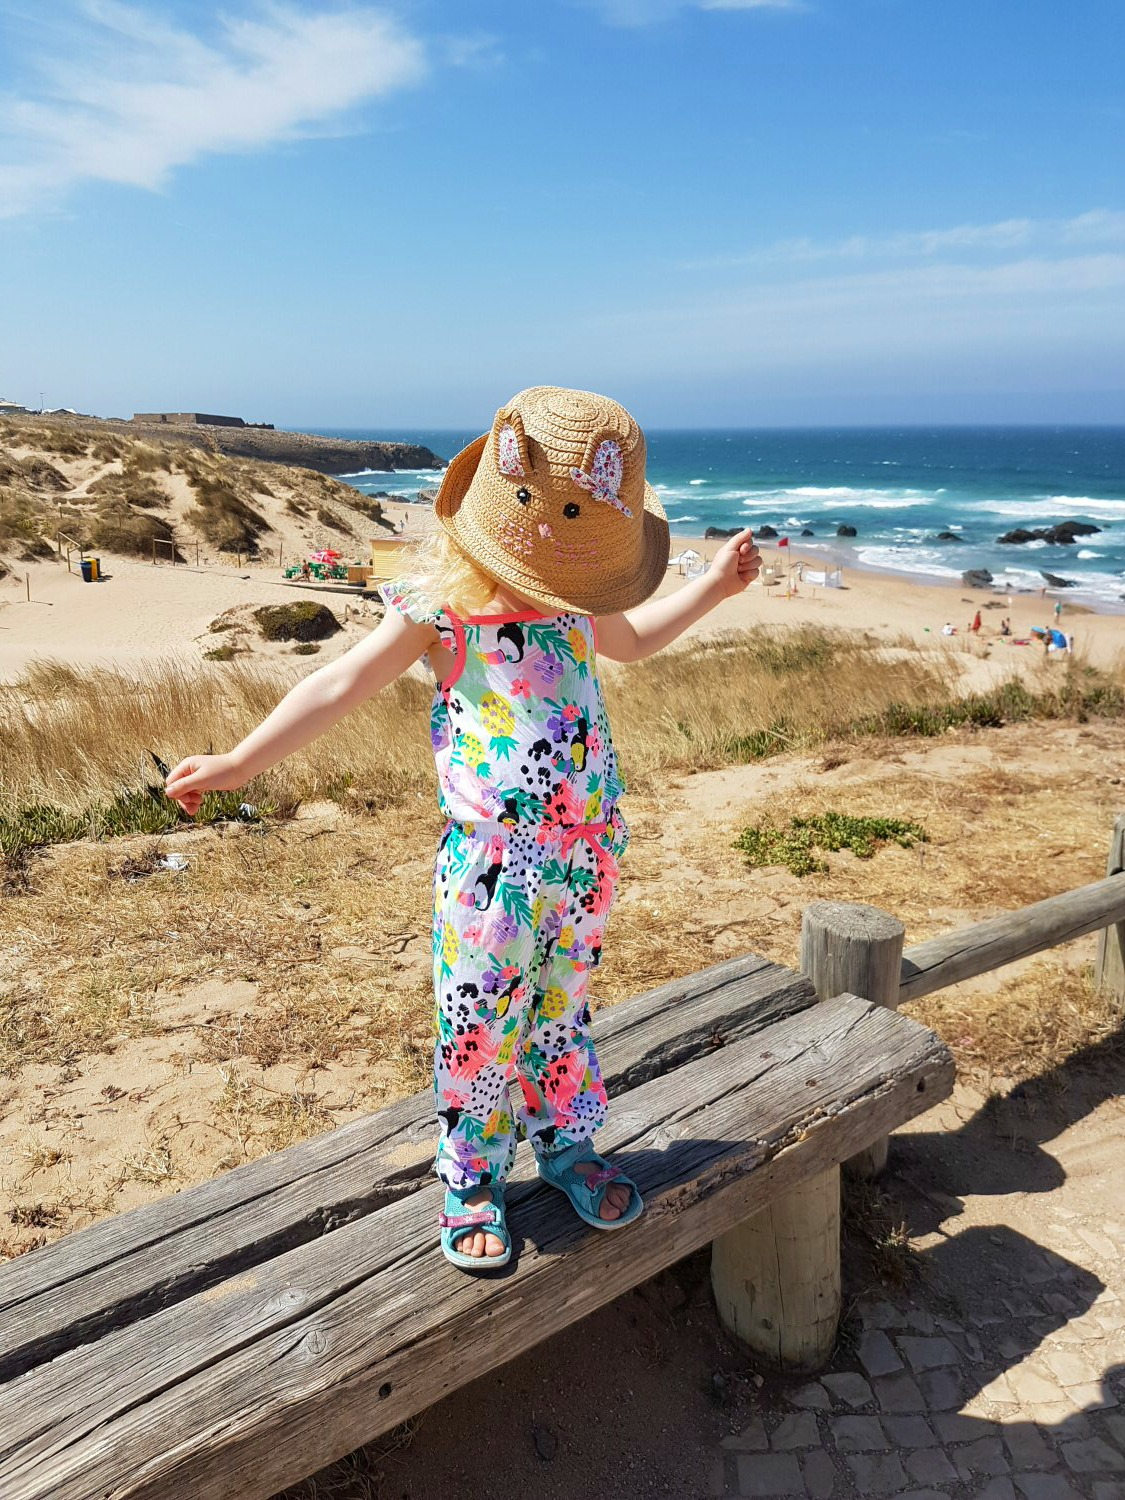 Turning up the colour and fun with some matching bright outfits for a summer holiday or day at the beach from George At Asda - my daughter in Porgual, in printed jumpsuit for the #GeorgeMiniMe challenge